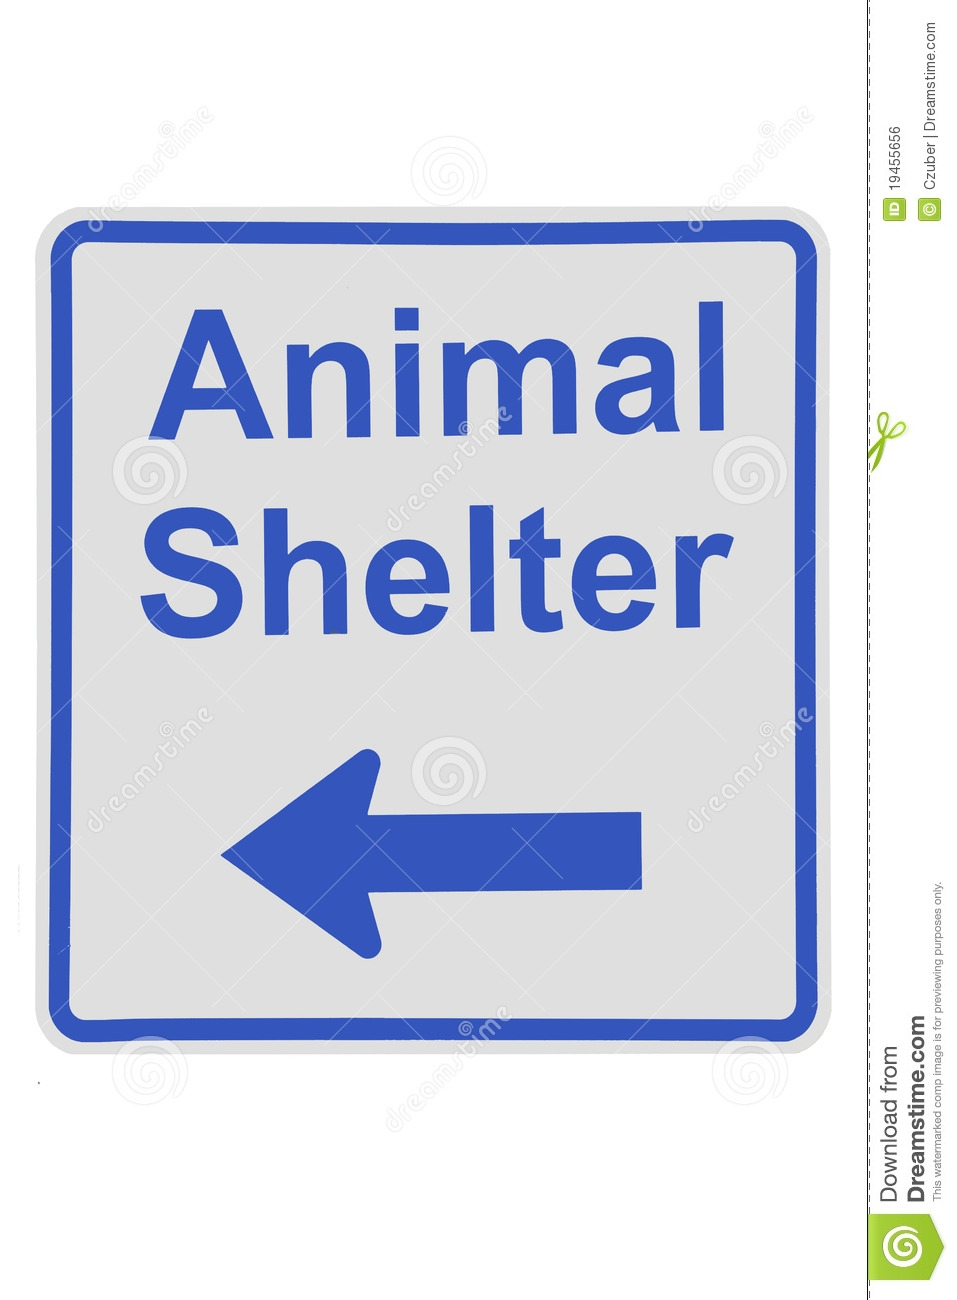 Animal shelter clipart free.